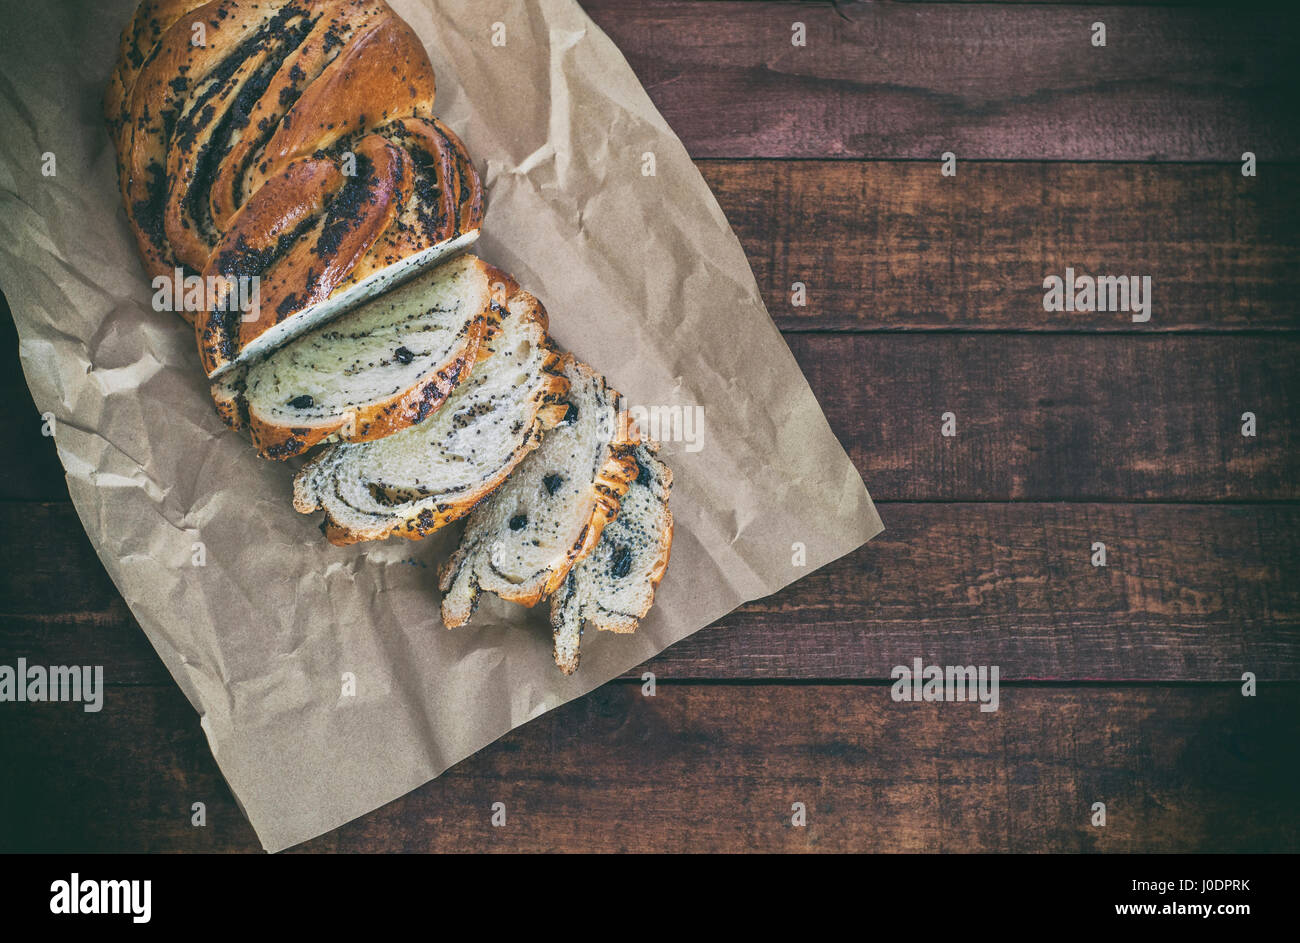 Bun with poppy seeds on kraft paper, empty space on the right, vintage toning - Stock Image